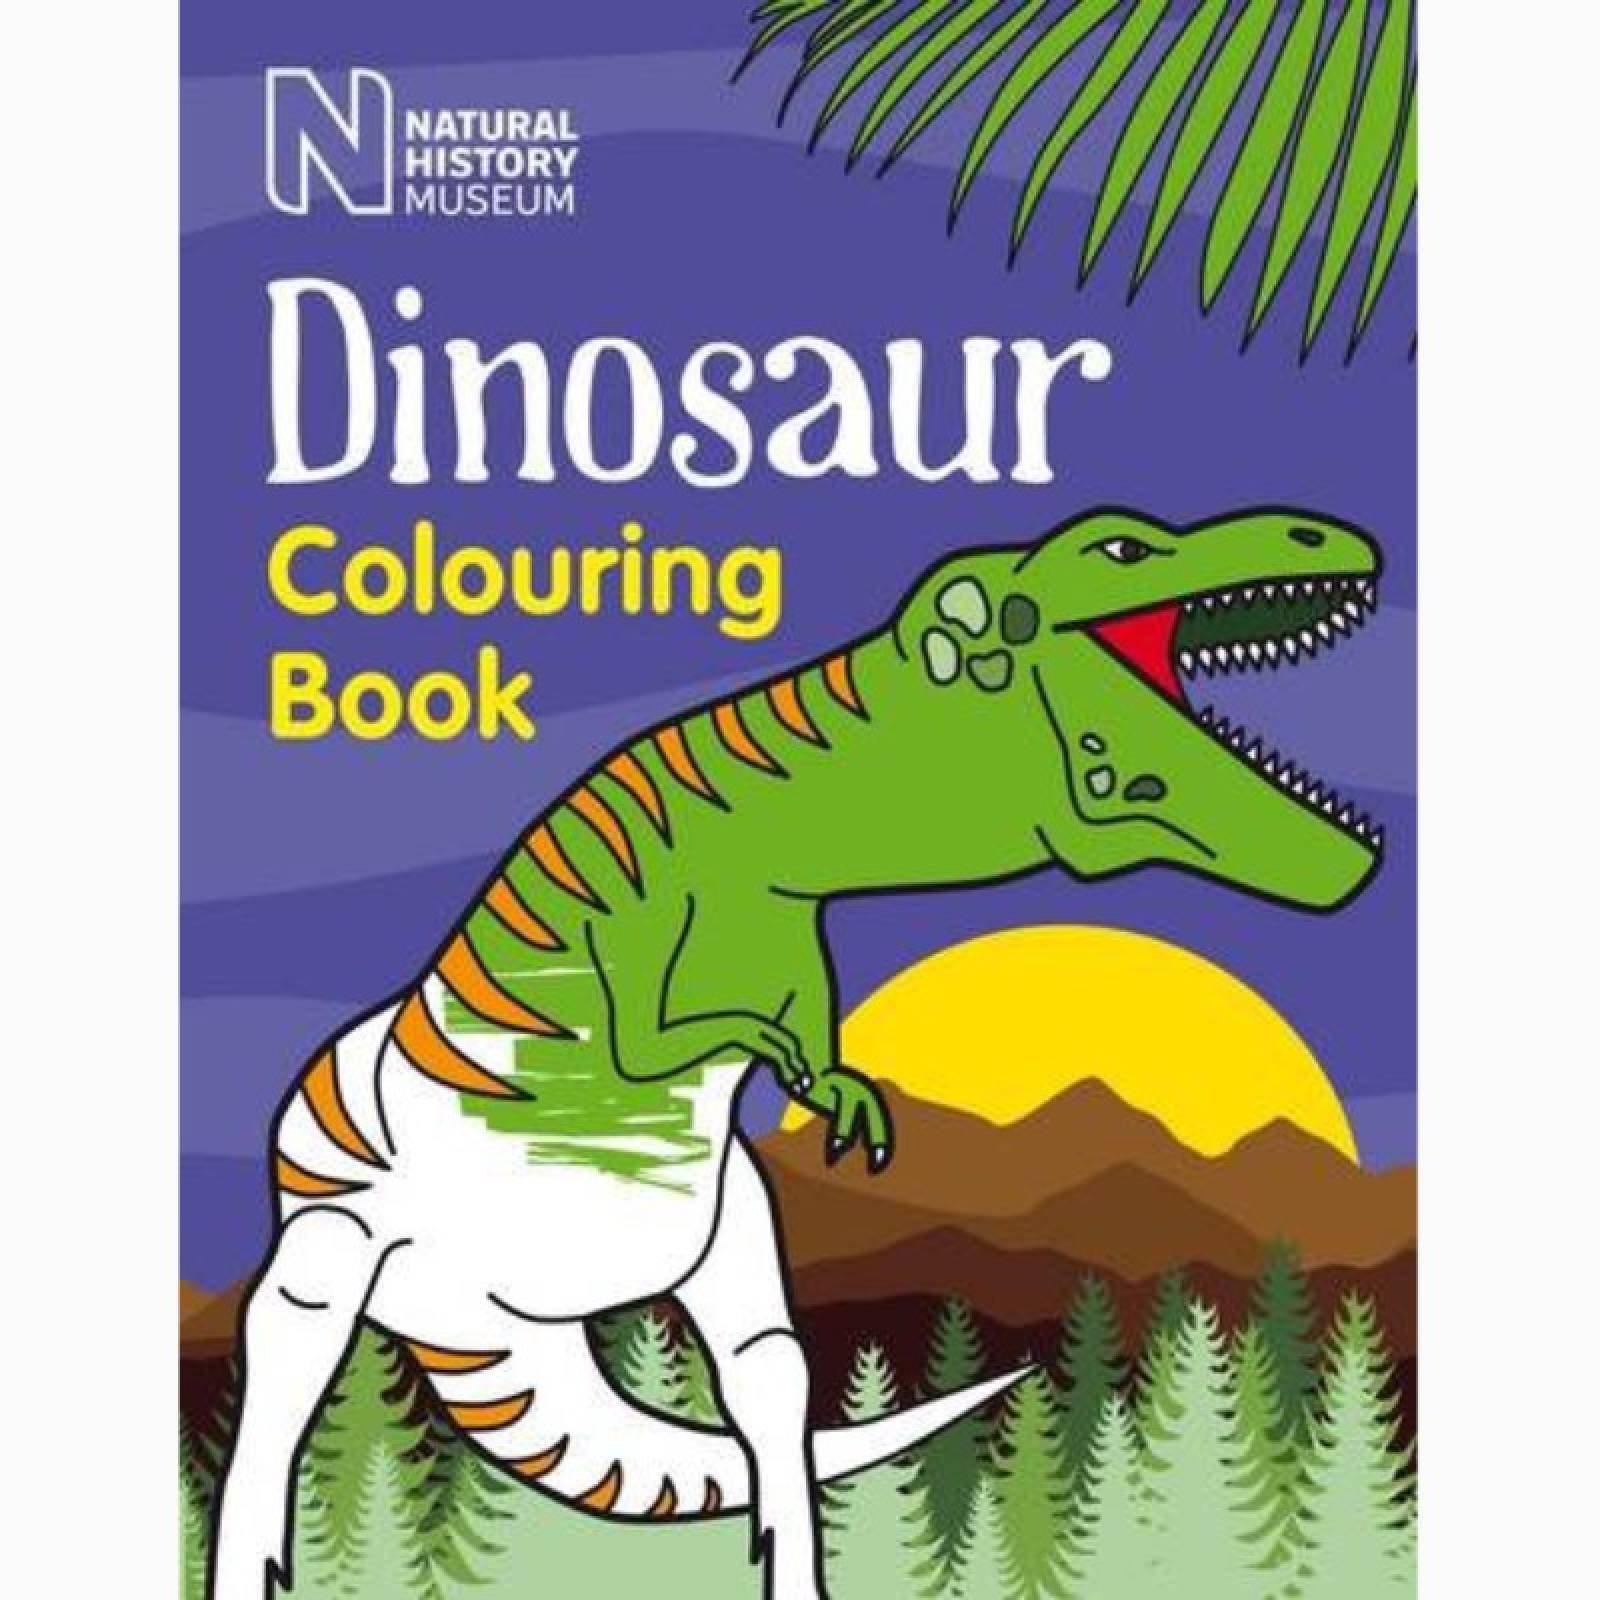 Dinosaur Colouring Book (NHM) - Paperback Book